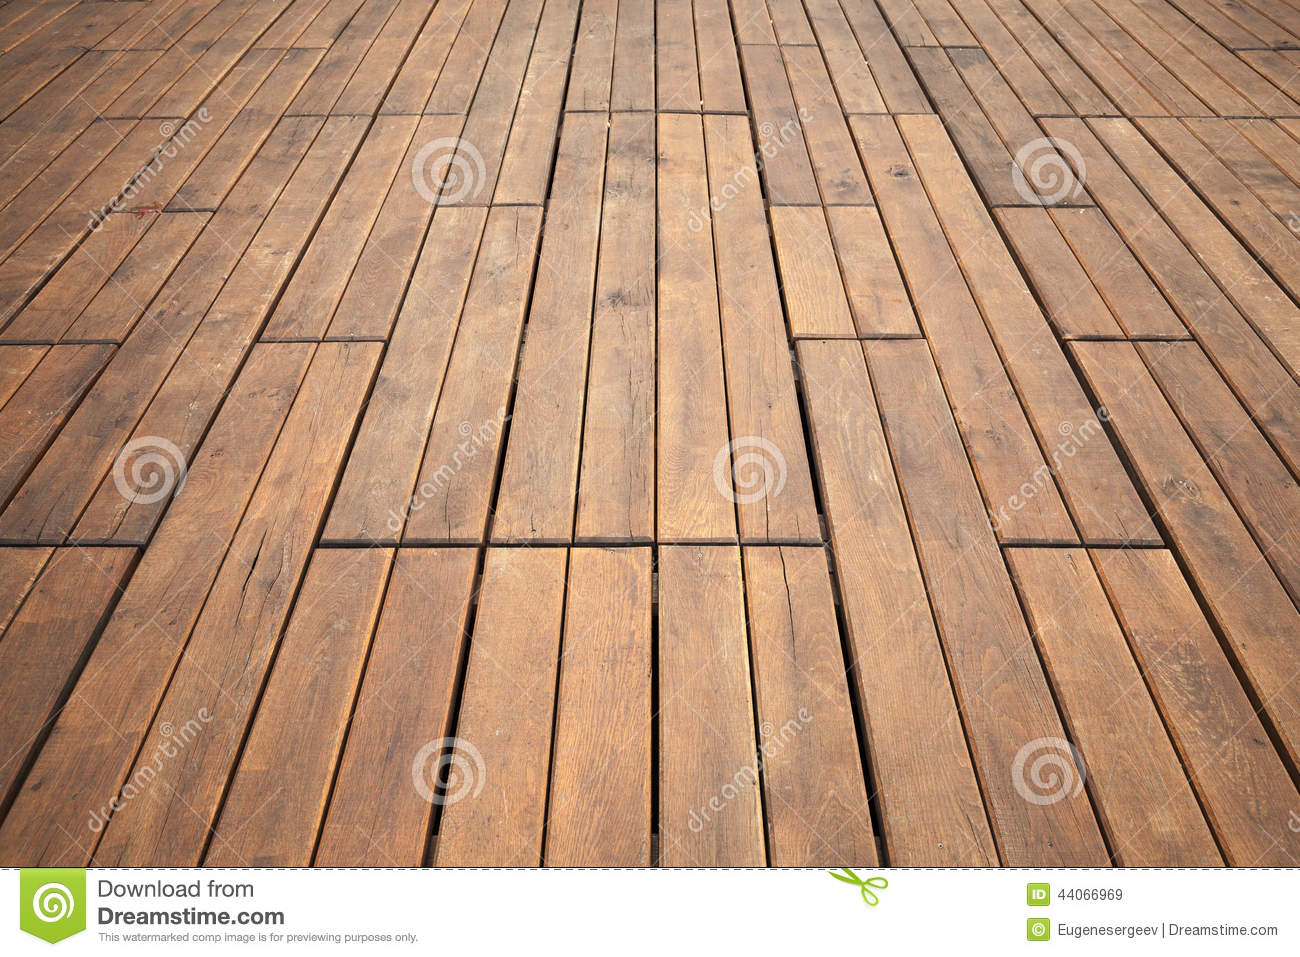 Dessin Parquet Bois Wooden Floor Perspective Background Photo Texture Stock